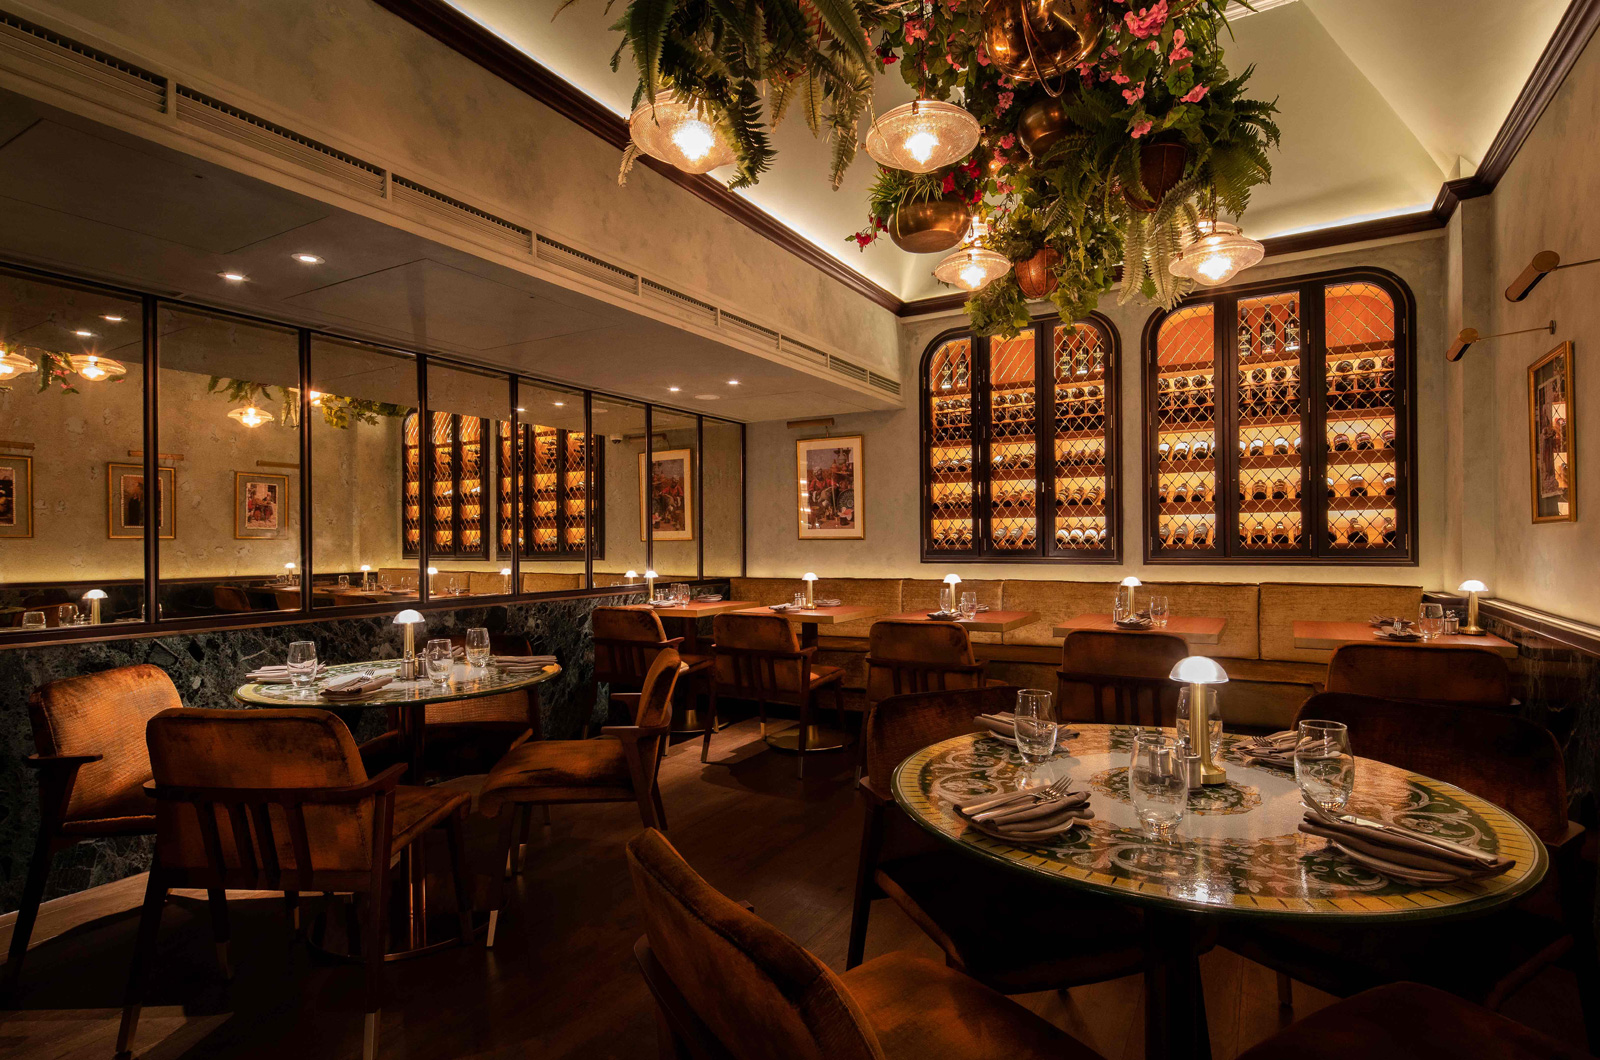 London's Norma restaurant brings a taste of Sicily to the city